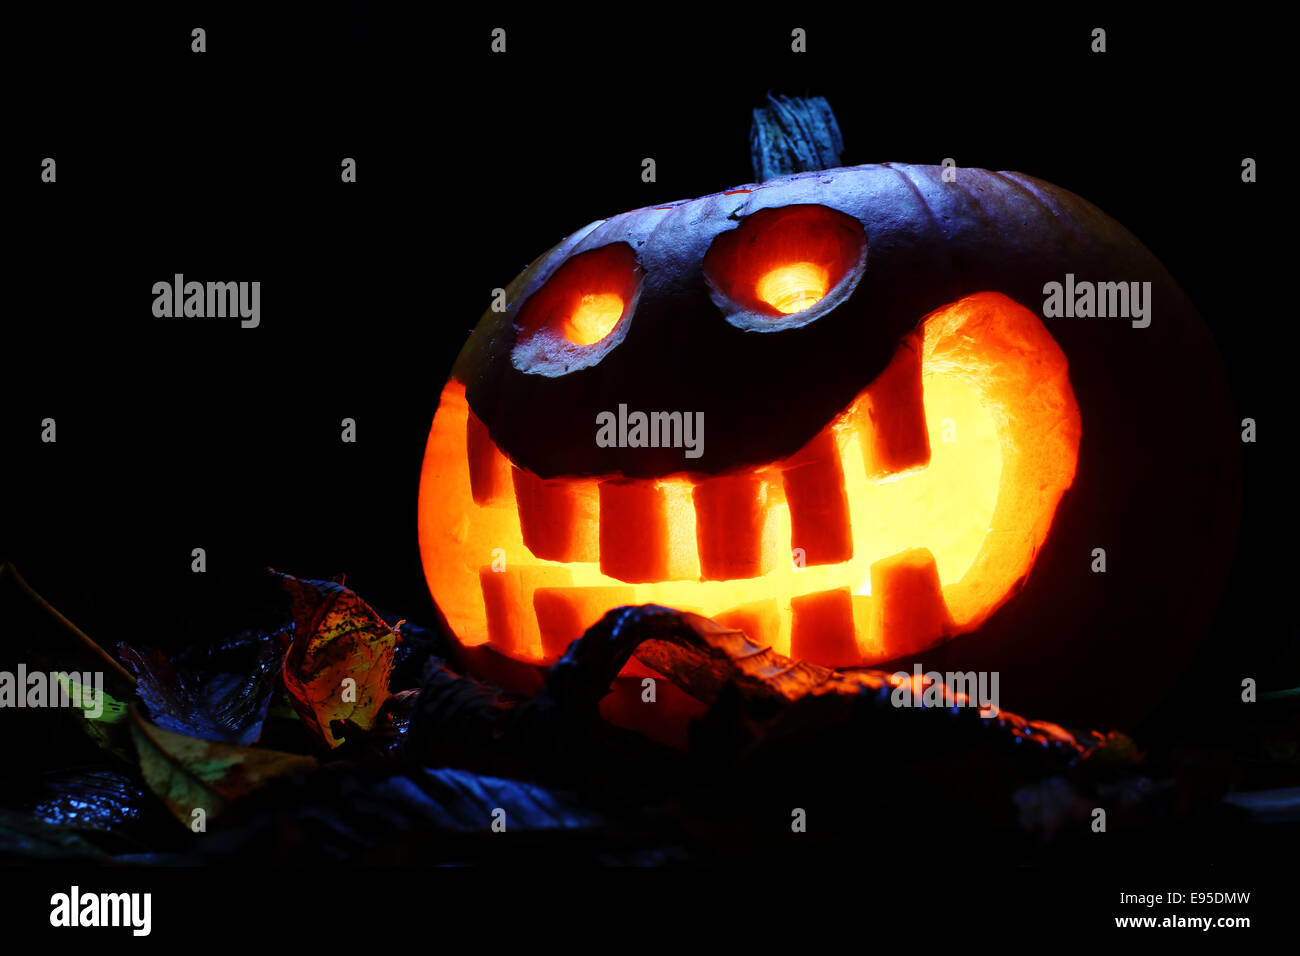 halloween-pumpkin-lantern-at-night-with-